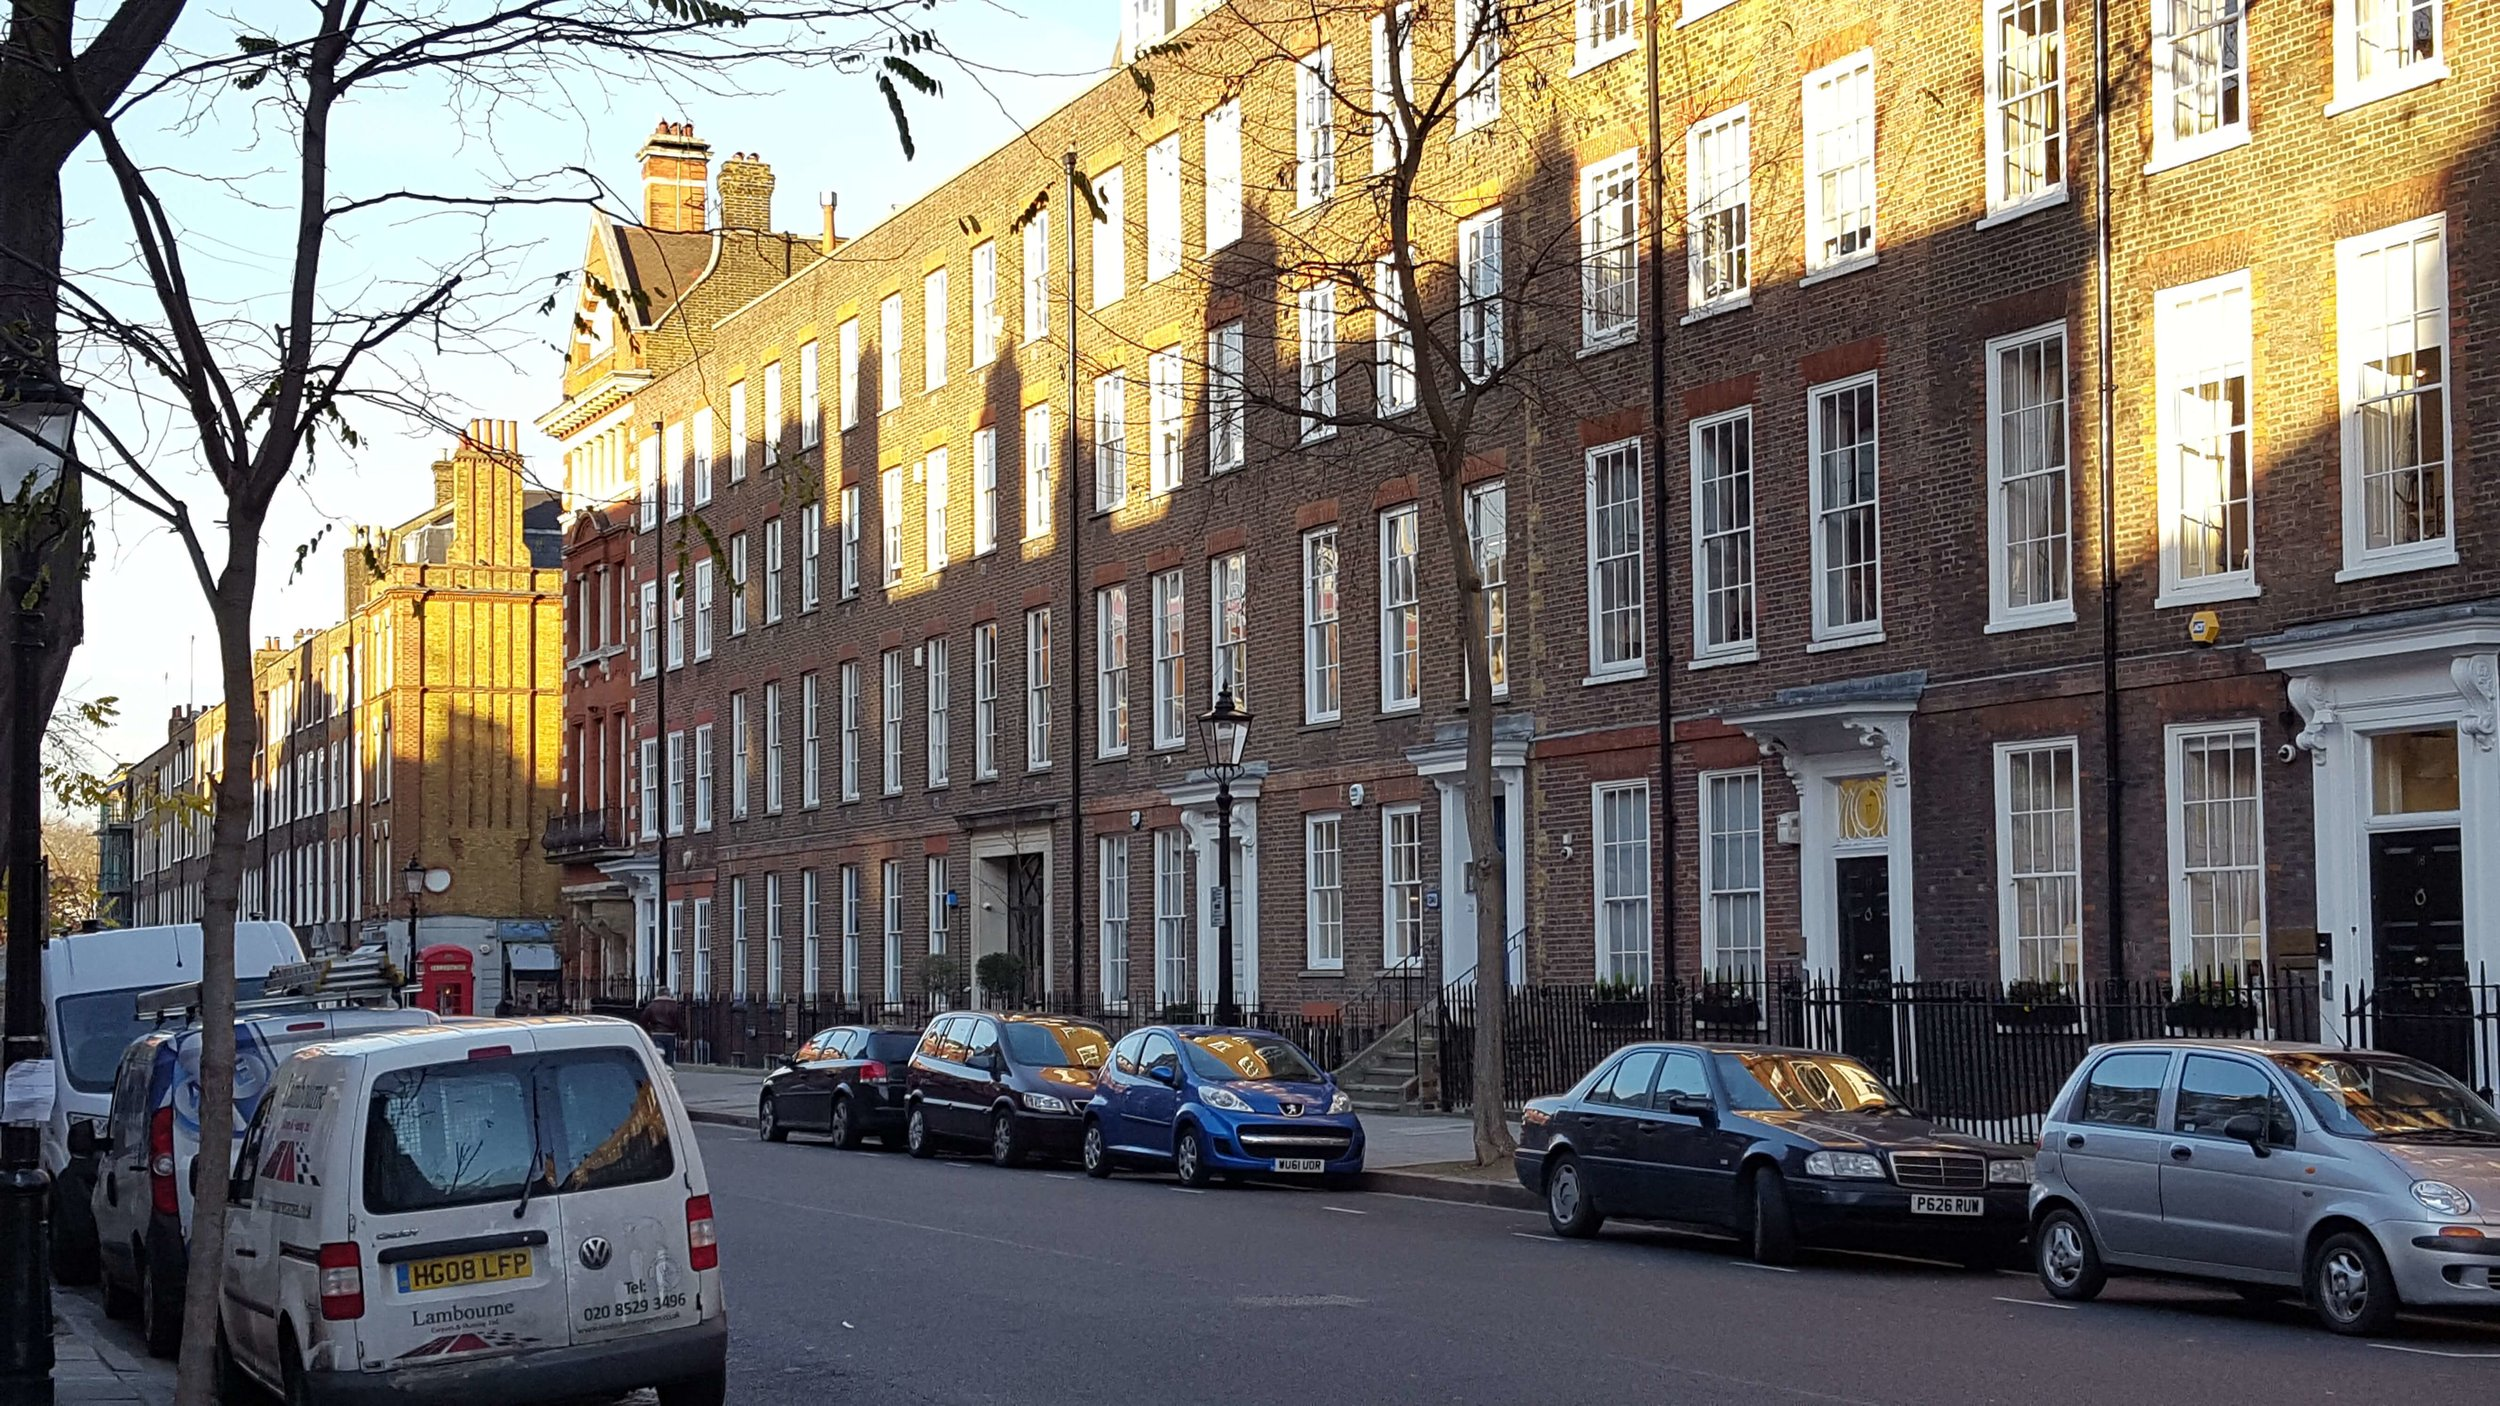 Shakespeare called this the most dangerous street in London. Take the literary tour of Bloomsbury and find out why.